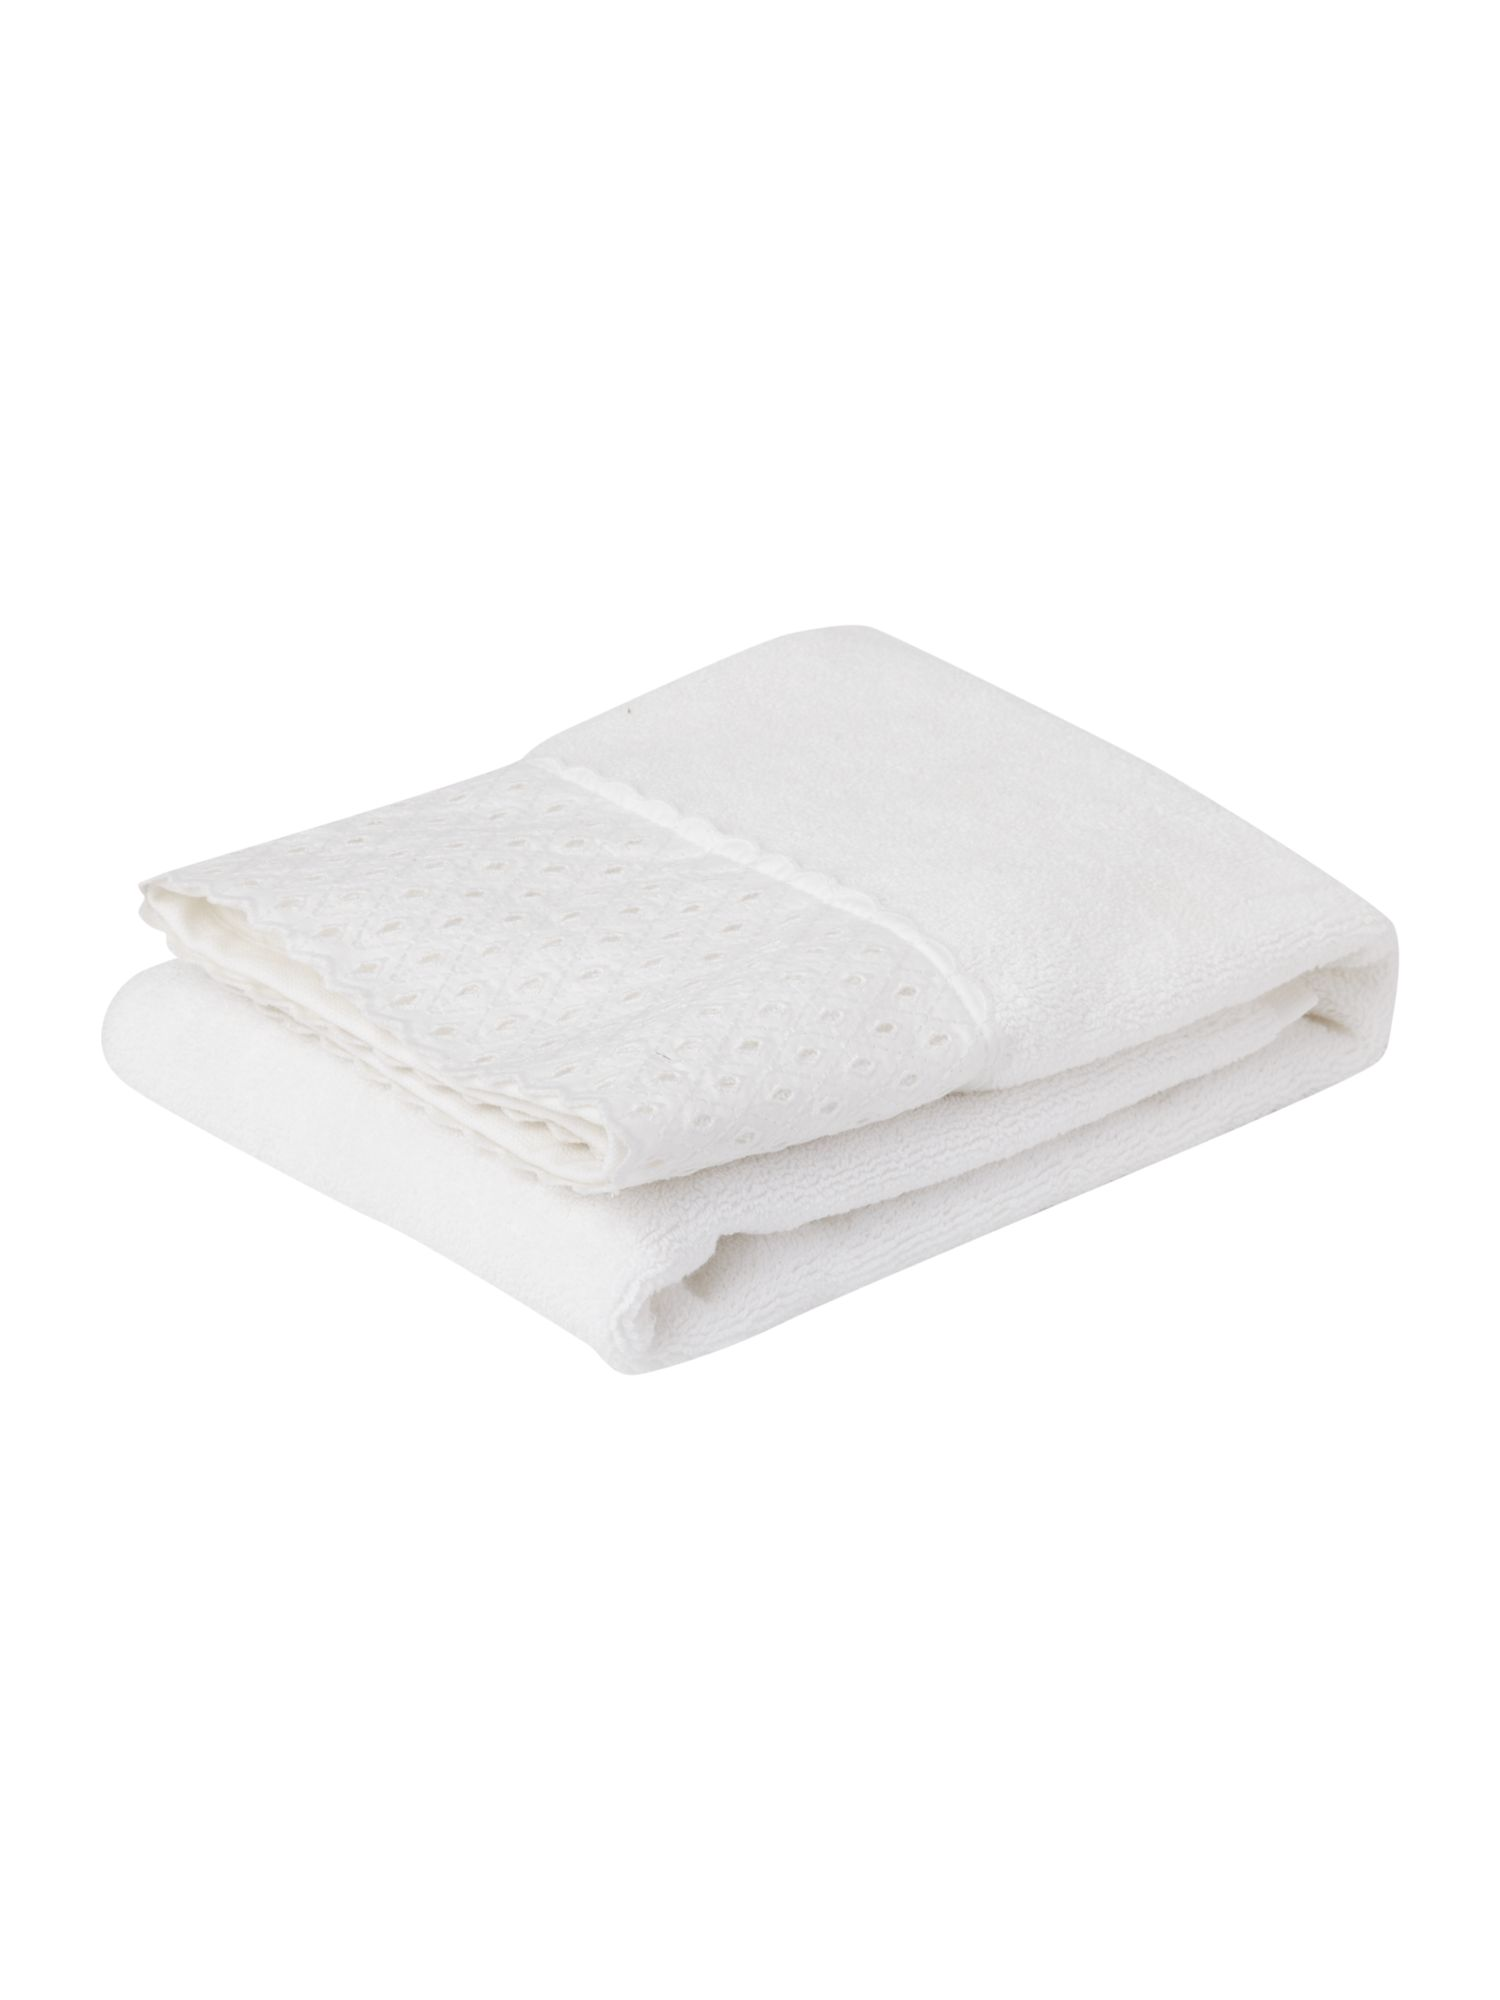 Set of 2 lace trimmed towels